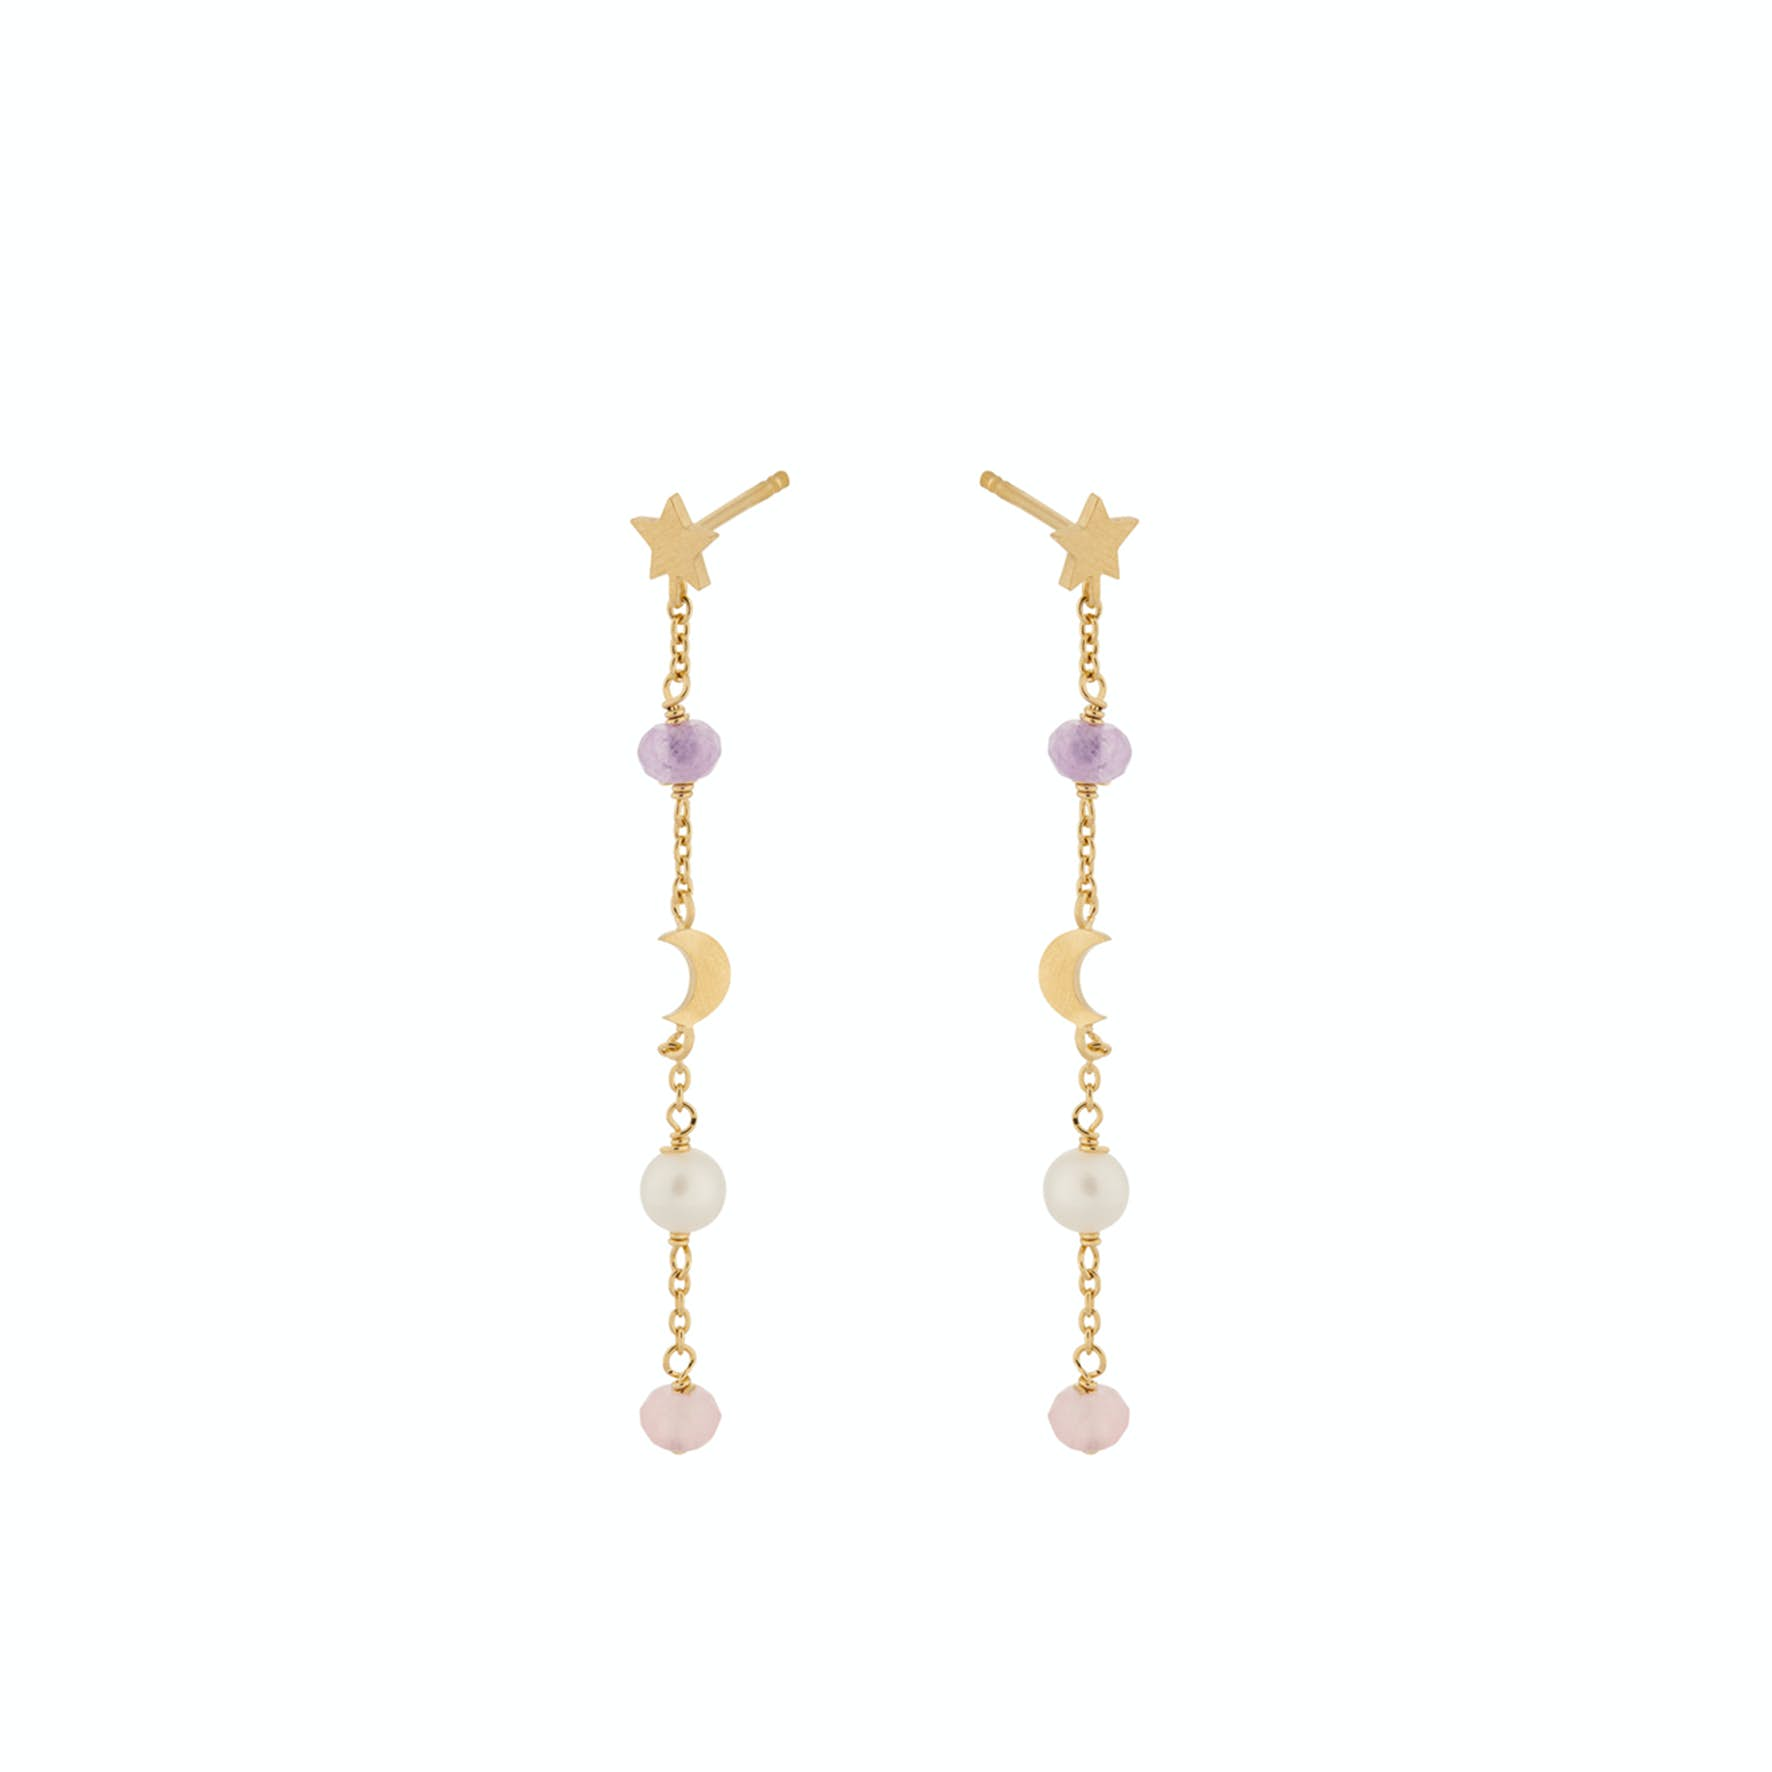 Pastel Dream Earchains from Pernille Corydon in Goldplated-Silver Sterling 925| Freshwater Pearl, Purple Agate,Pink Agate